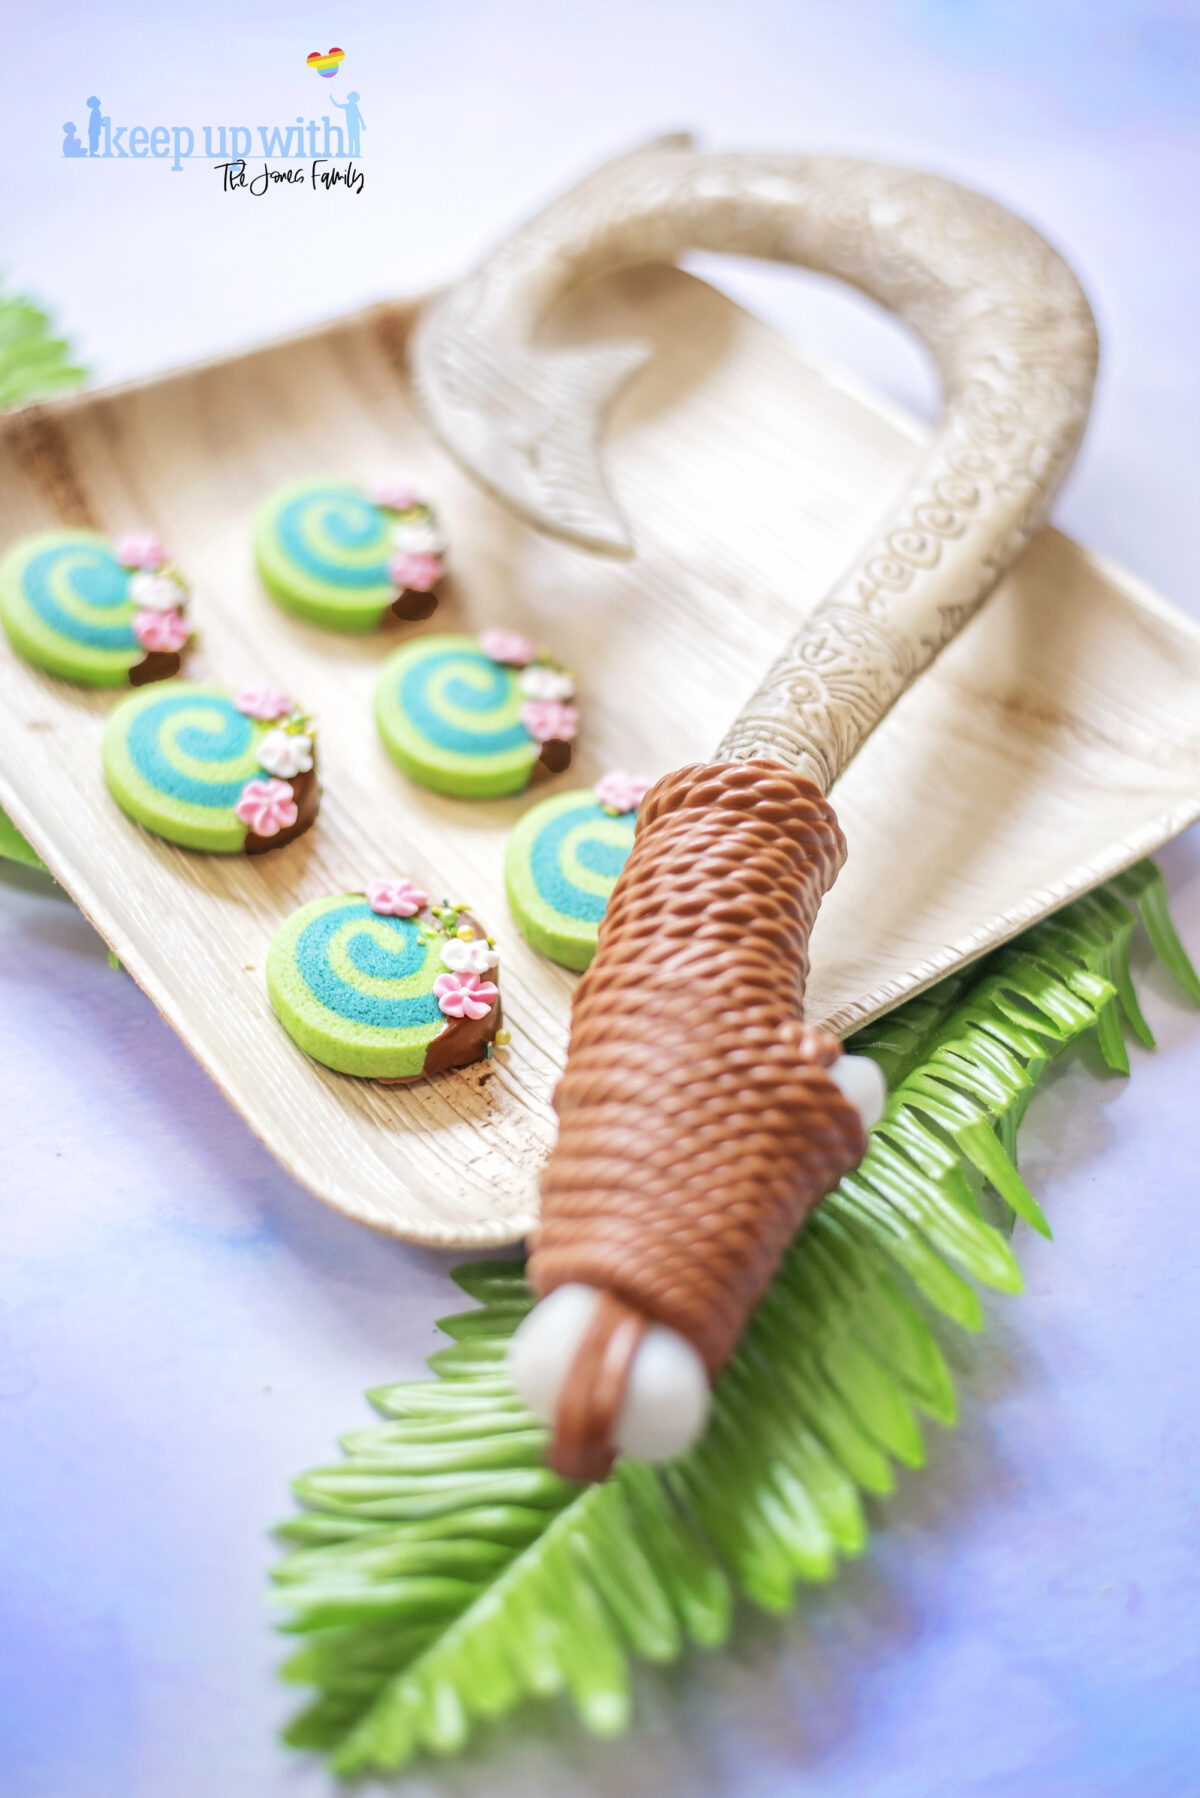 Image shows Disney's Moana Heart of Te Fiti Biscuits, a swirl of bright and dark green, dipped slightly in milk chocolate and embellished with sugar blossom flowers and green sprinkles. They are set on a bamboo plate with a fern underneath, and Maui's fish hook is resting on the plate also. Image by keep up with the jones family.